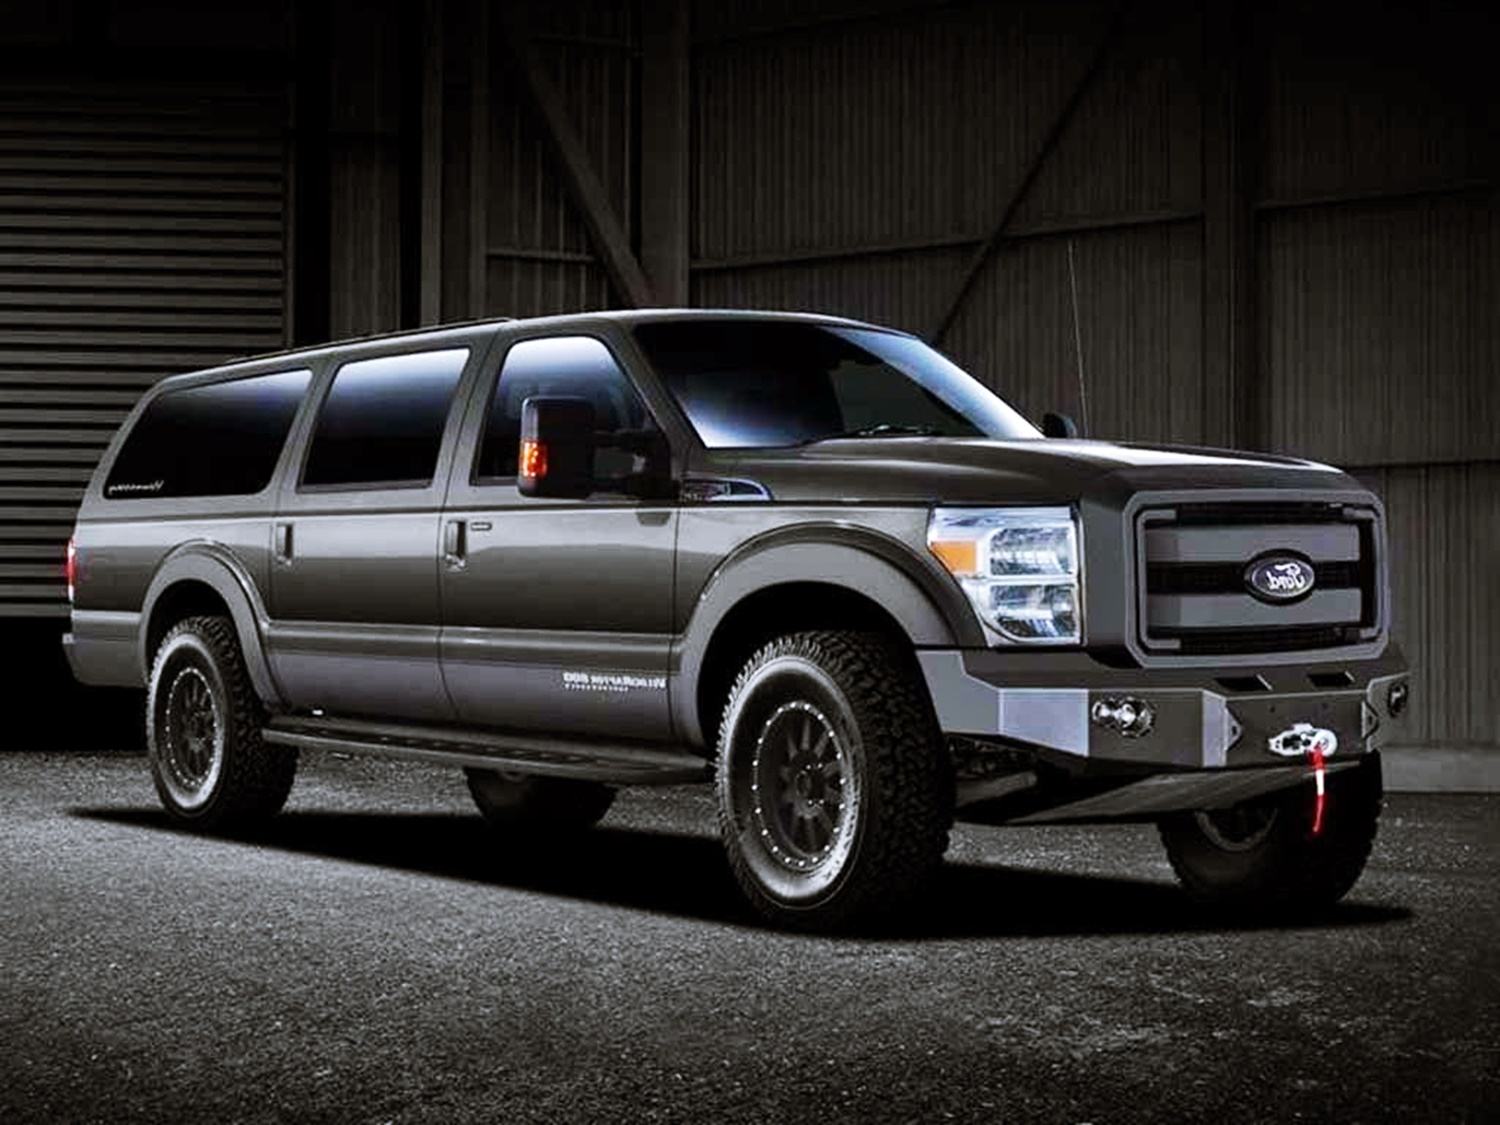 5 Ford Excursion Hot Rumors and Updates  Replacement or